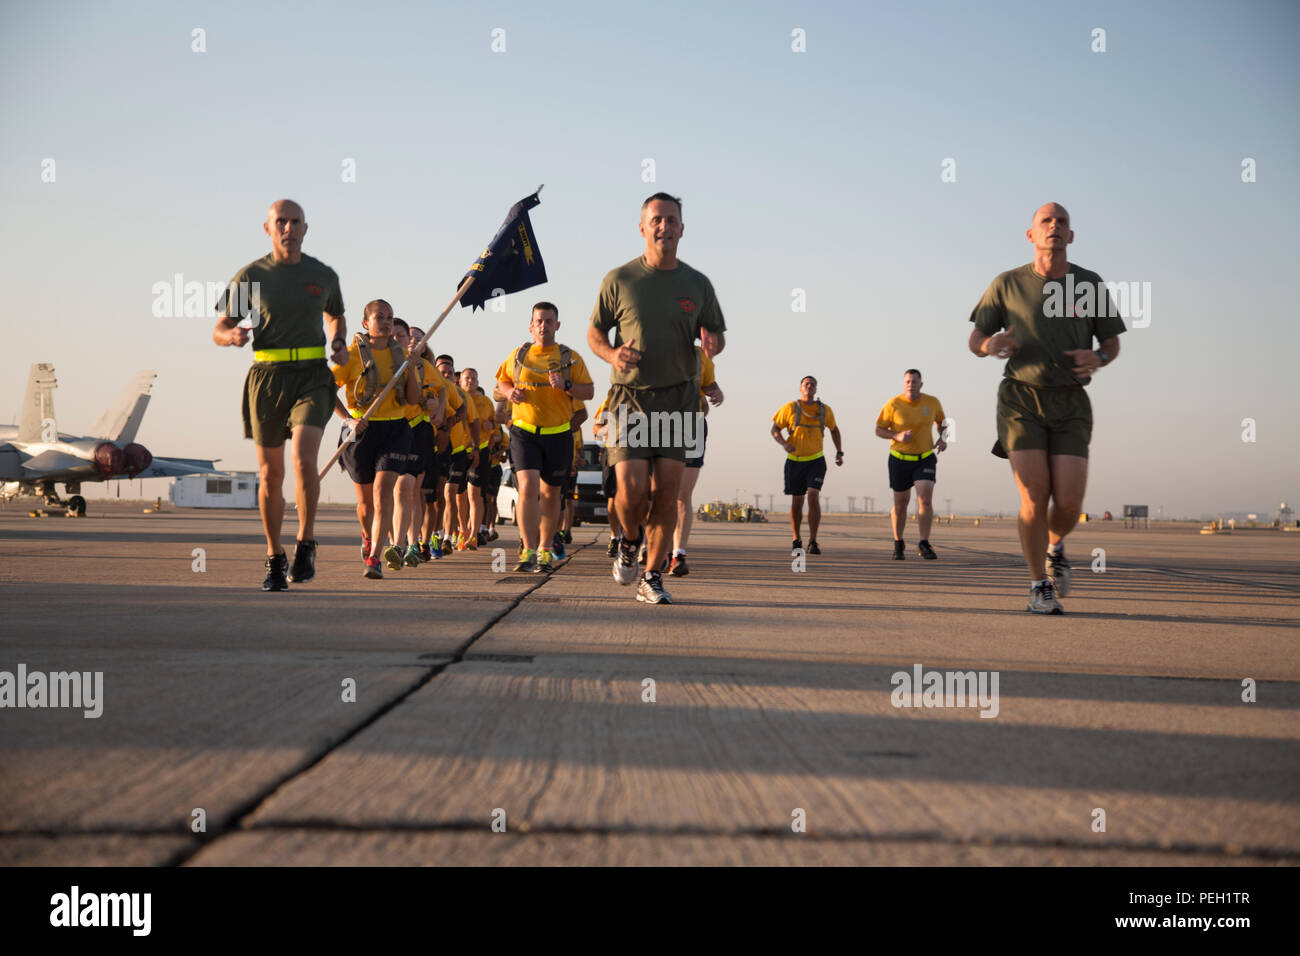 U.S. Navy Command Master Chief Petty Officer Frank Dominguez (left), the command master chief of 3d Marine Aircraft Wing (MAW), Marine Corps Maj. Gen. Michael Rocco, the commanding general of 3d MAW, and Brig. Gen. Kevin Iiams, the assistant wing commander of 3d MAW, participate in a run with all I Marine Expeditionary Force and Marine Corps Base Camp Pendleton Hospital Chief Petty Officer Selectees aboard Marine Corps Air Station Miramar, San Diego, Calif., Aug. 27, 2015. The run was conducted to build camaraderie and receive mentorship and guidance from the 3d MAW commanding general and assi - Stock Image